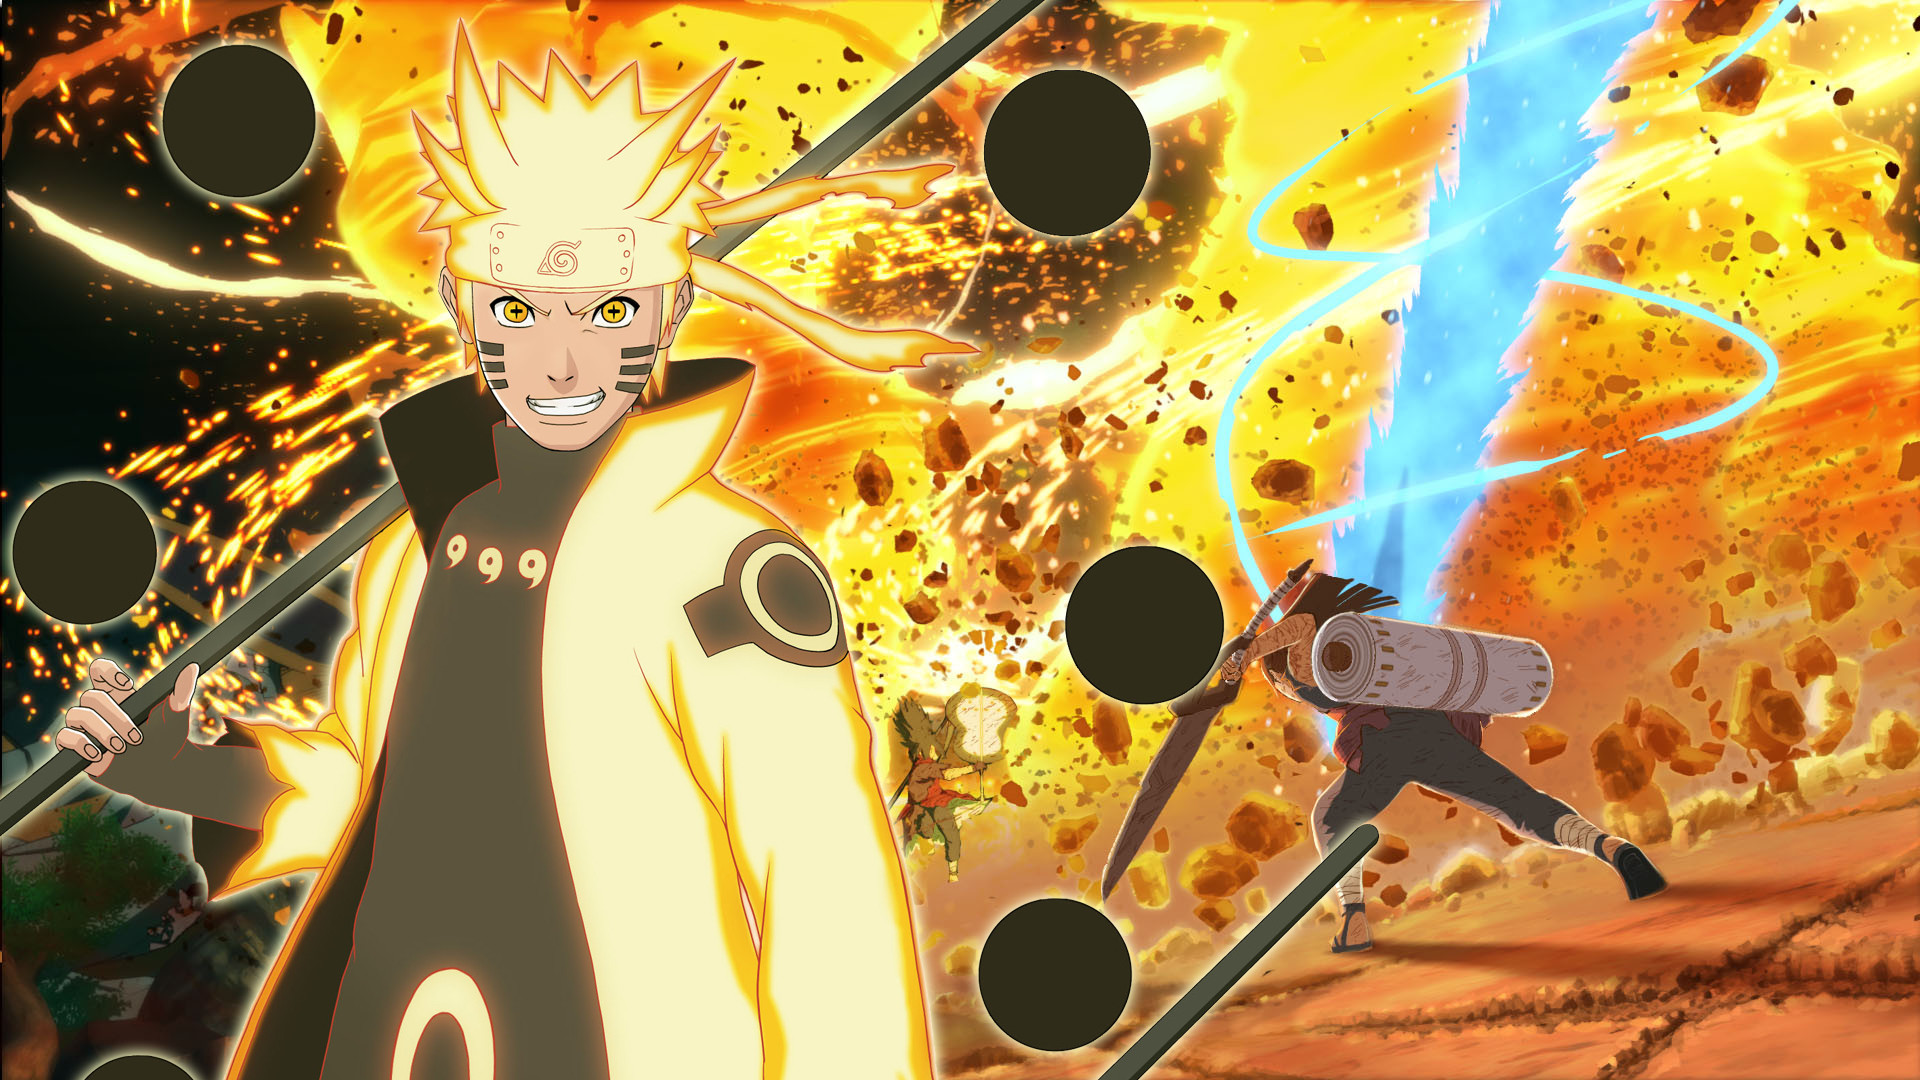 1920x1080 Naruto HD Wallpapers Backgrounds Wallpaper 1920×1080 Naruto Shippuden  Wallpaper (44 Wallpapers) |